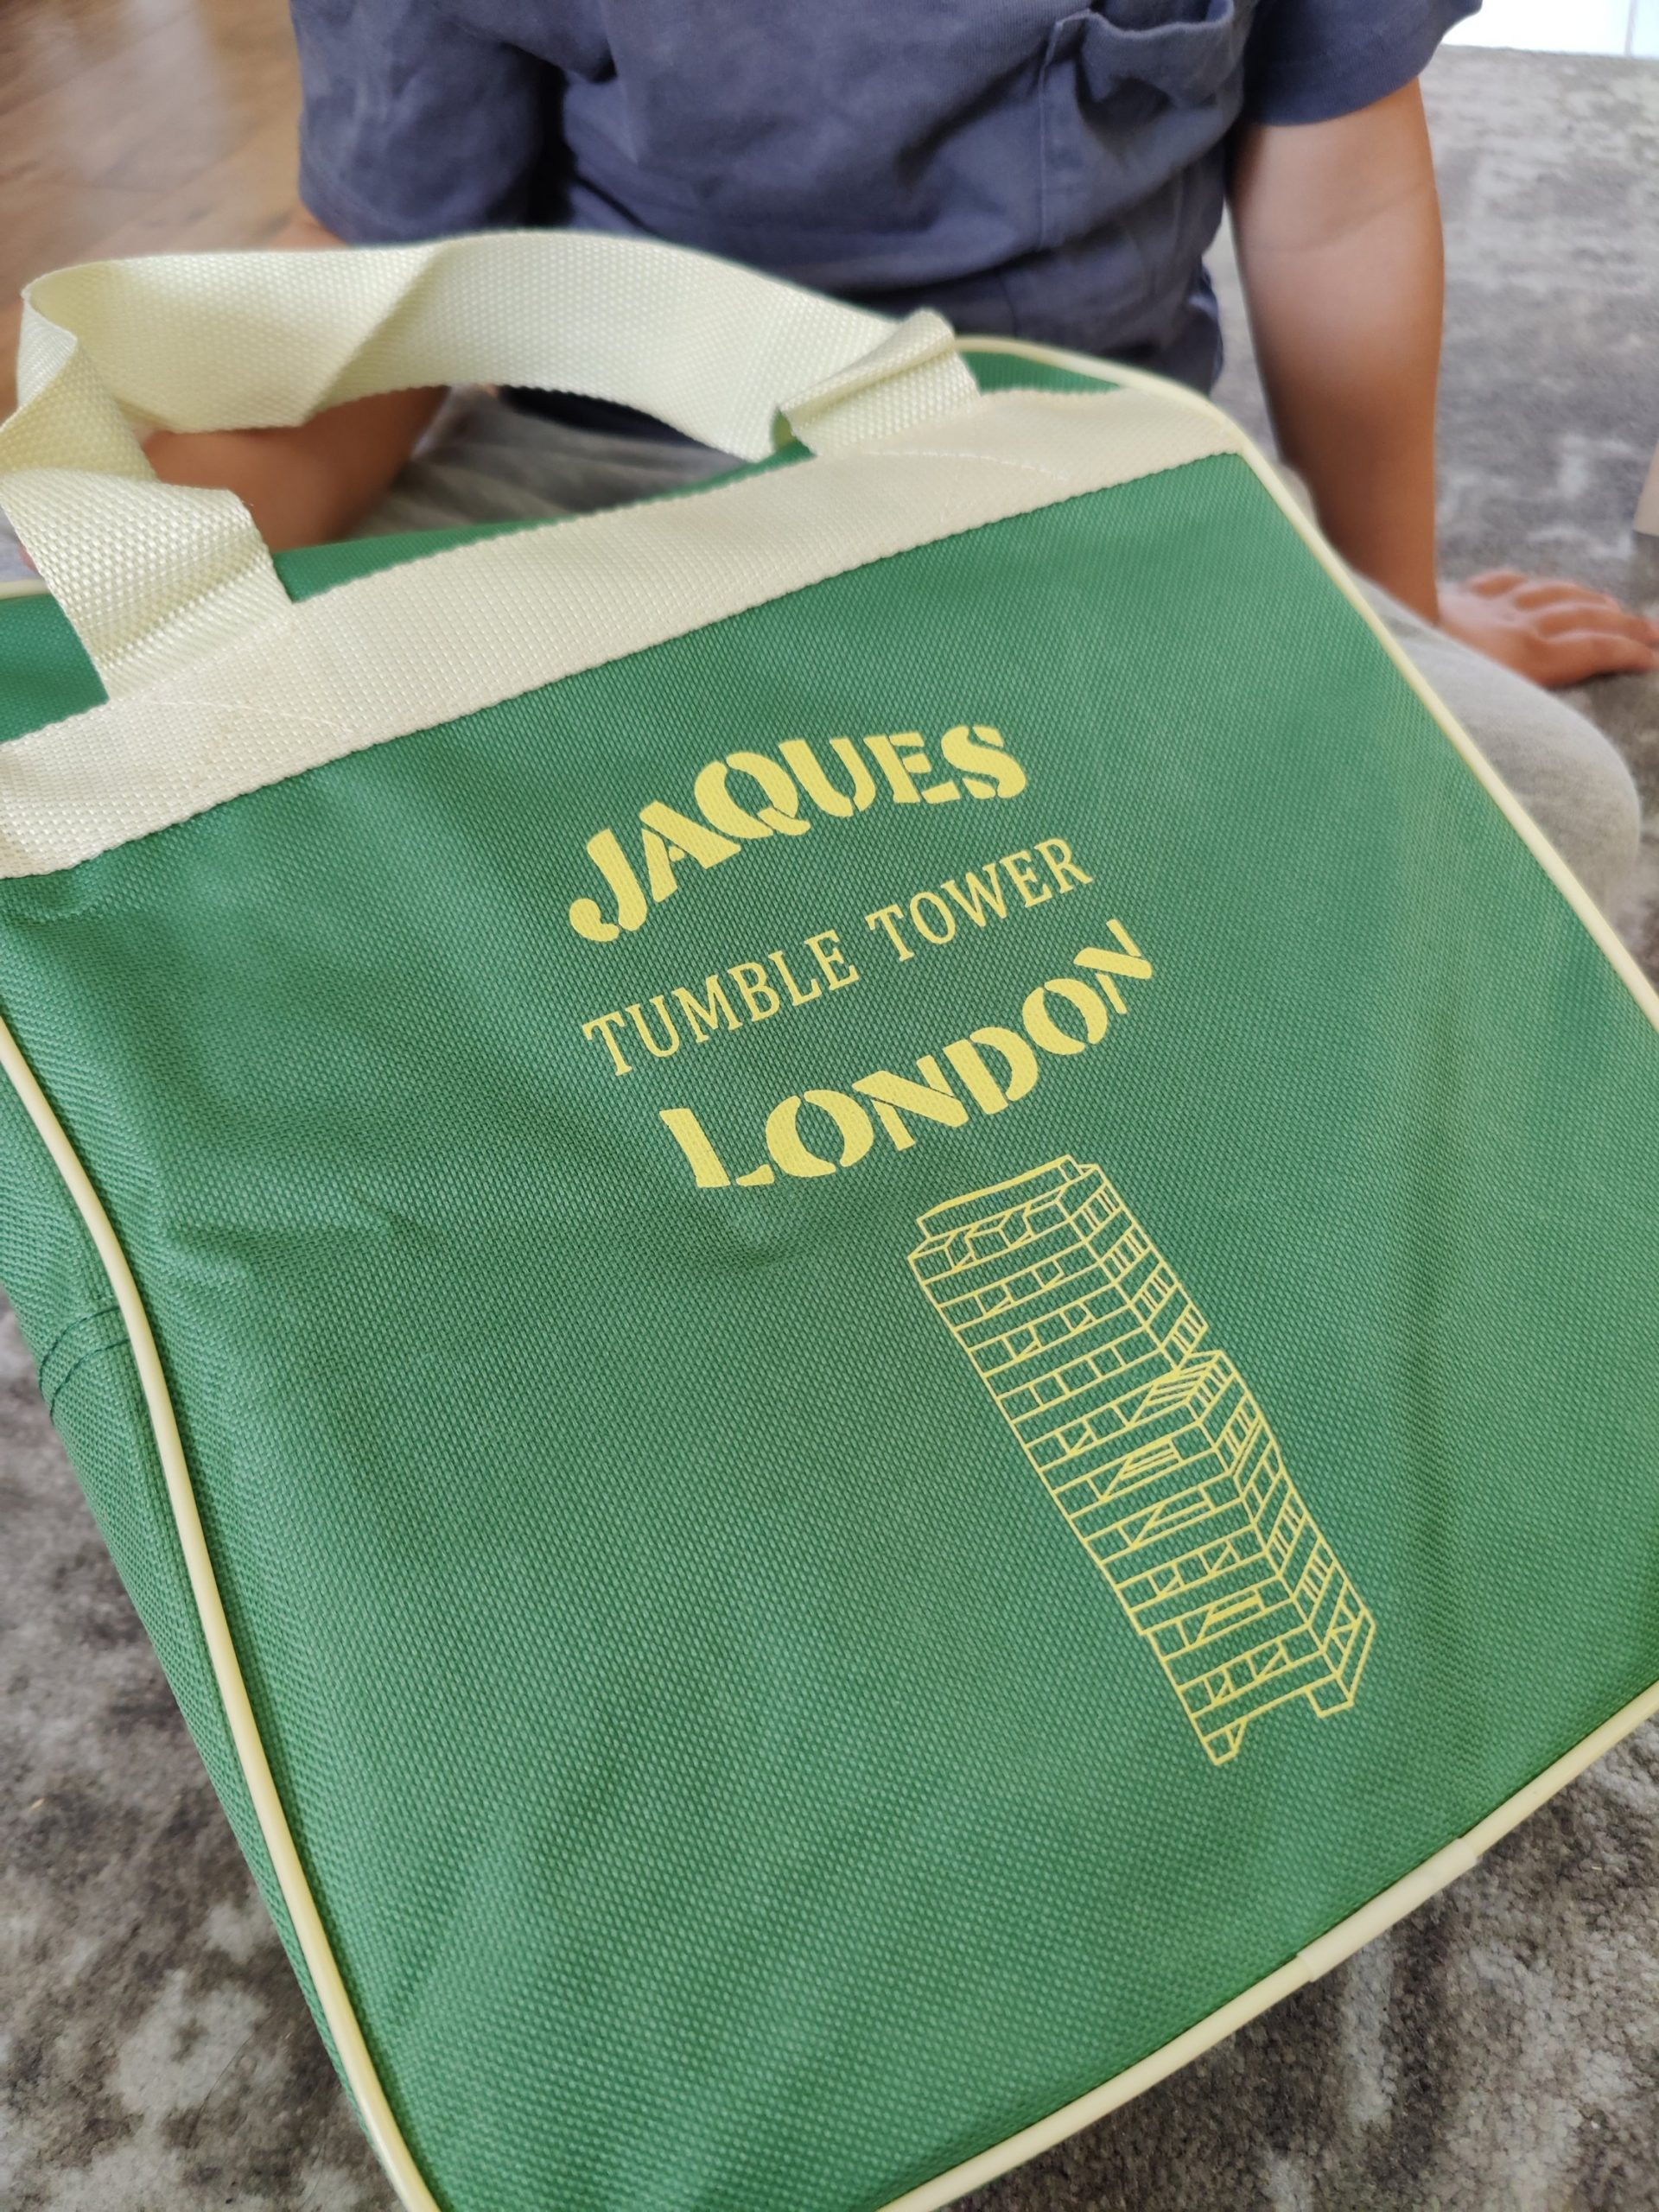 Gifted: Jaques of London